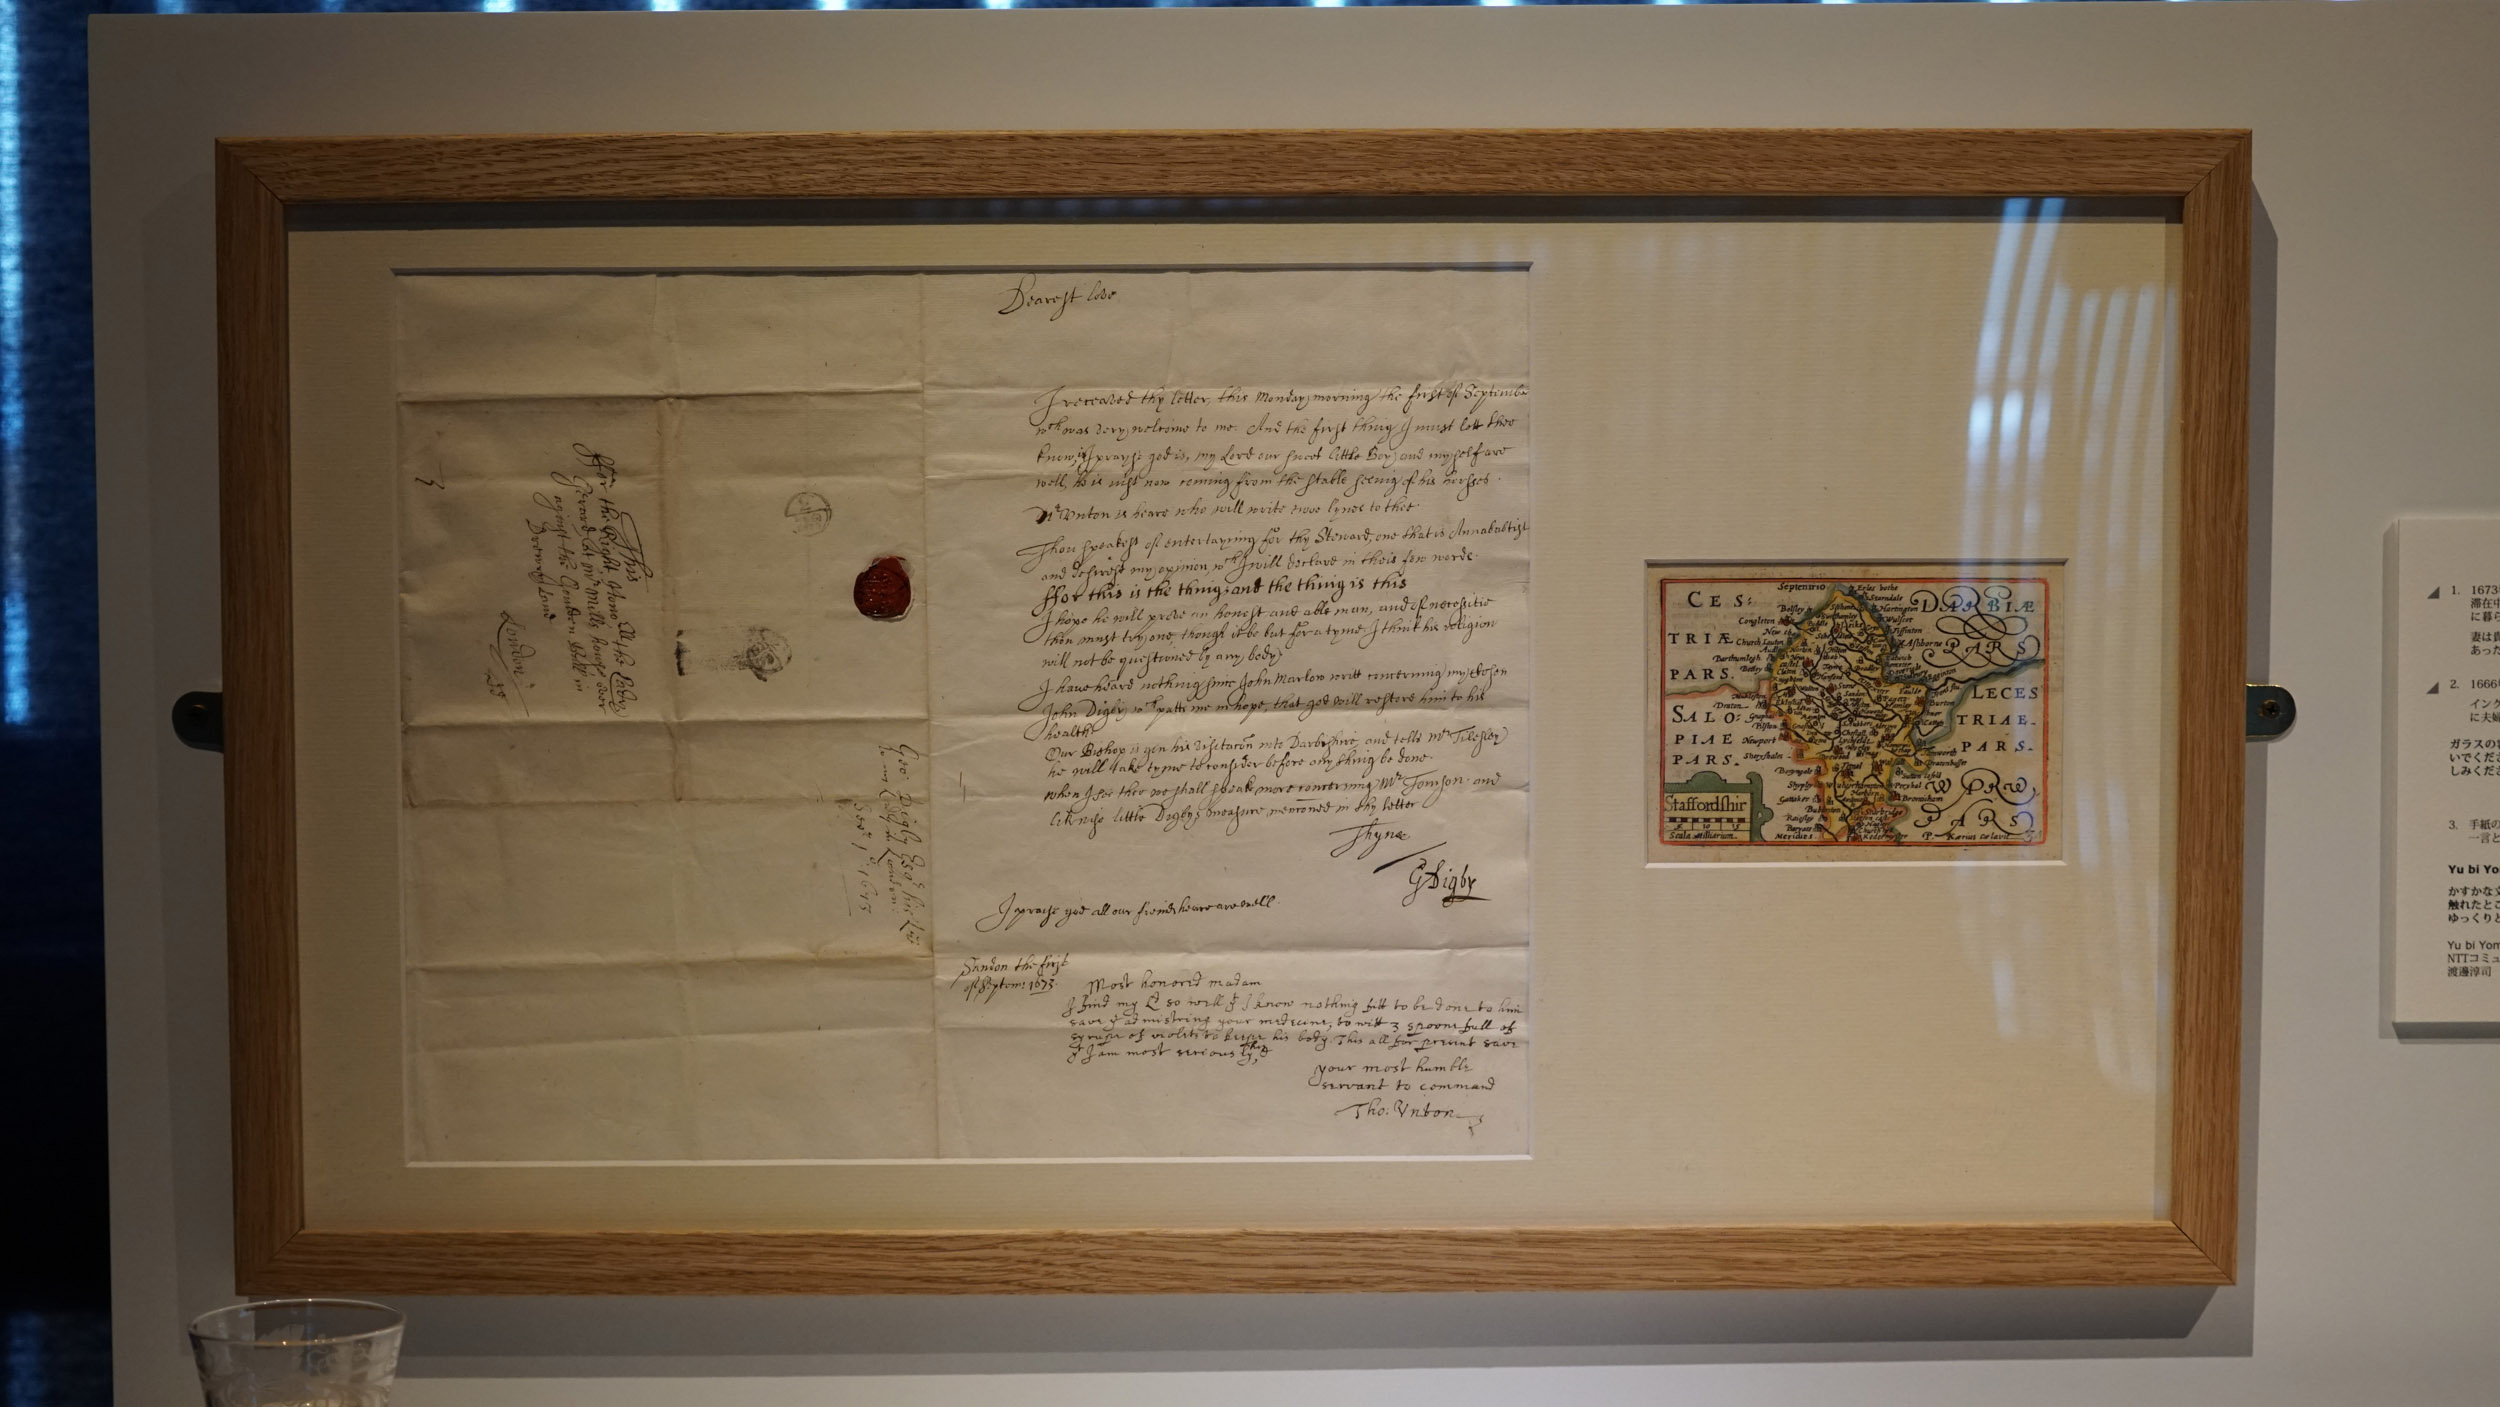 Image 3: Viola Odorata installation - letter (1673) and map of Staffordshire (1666)